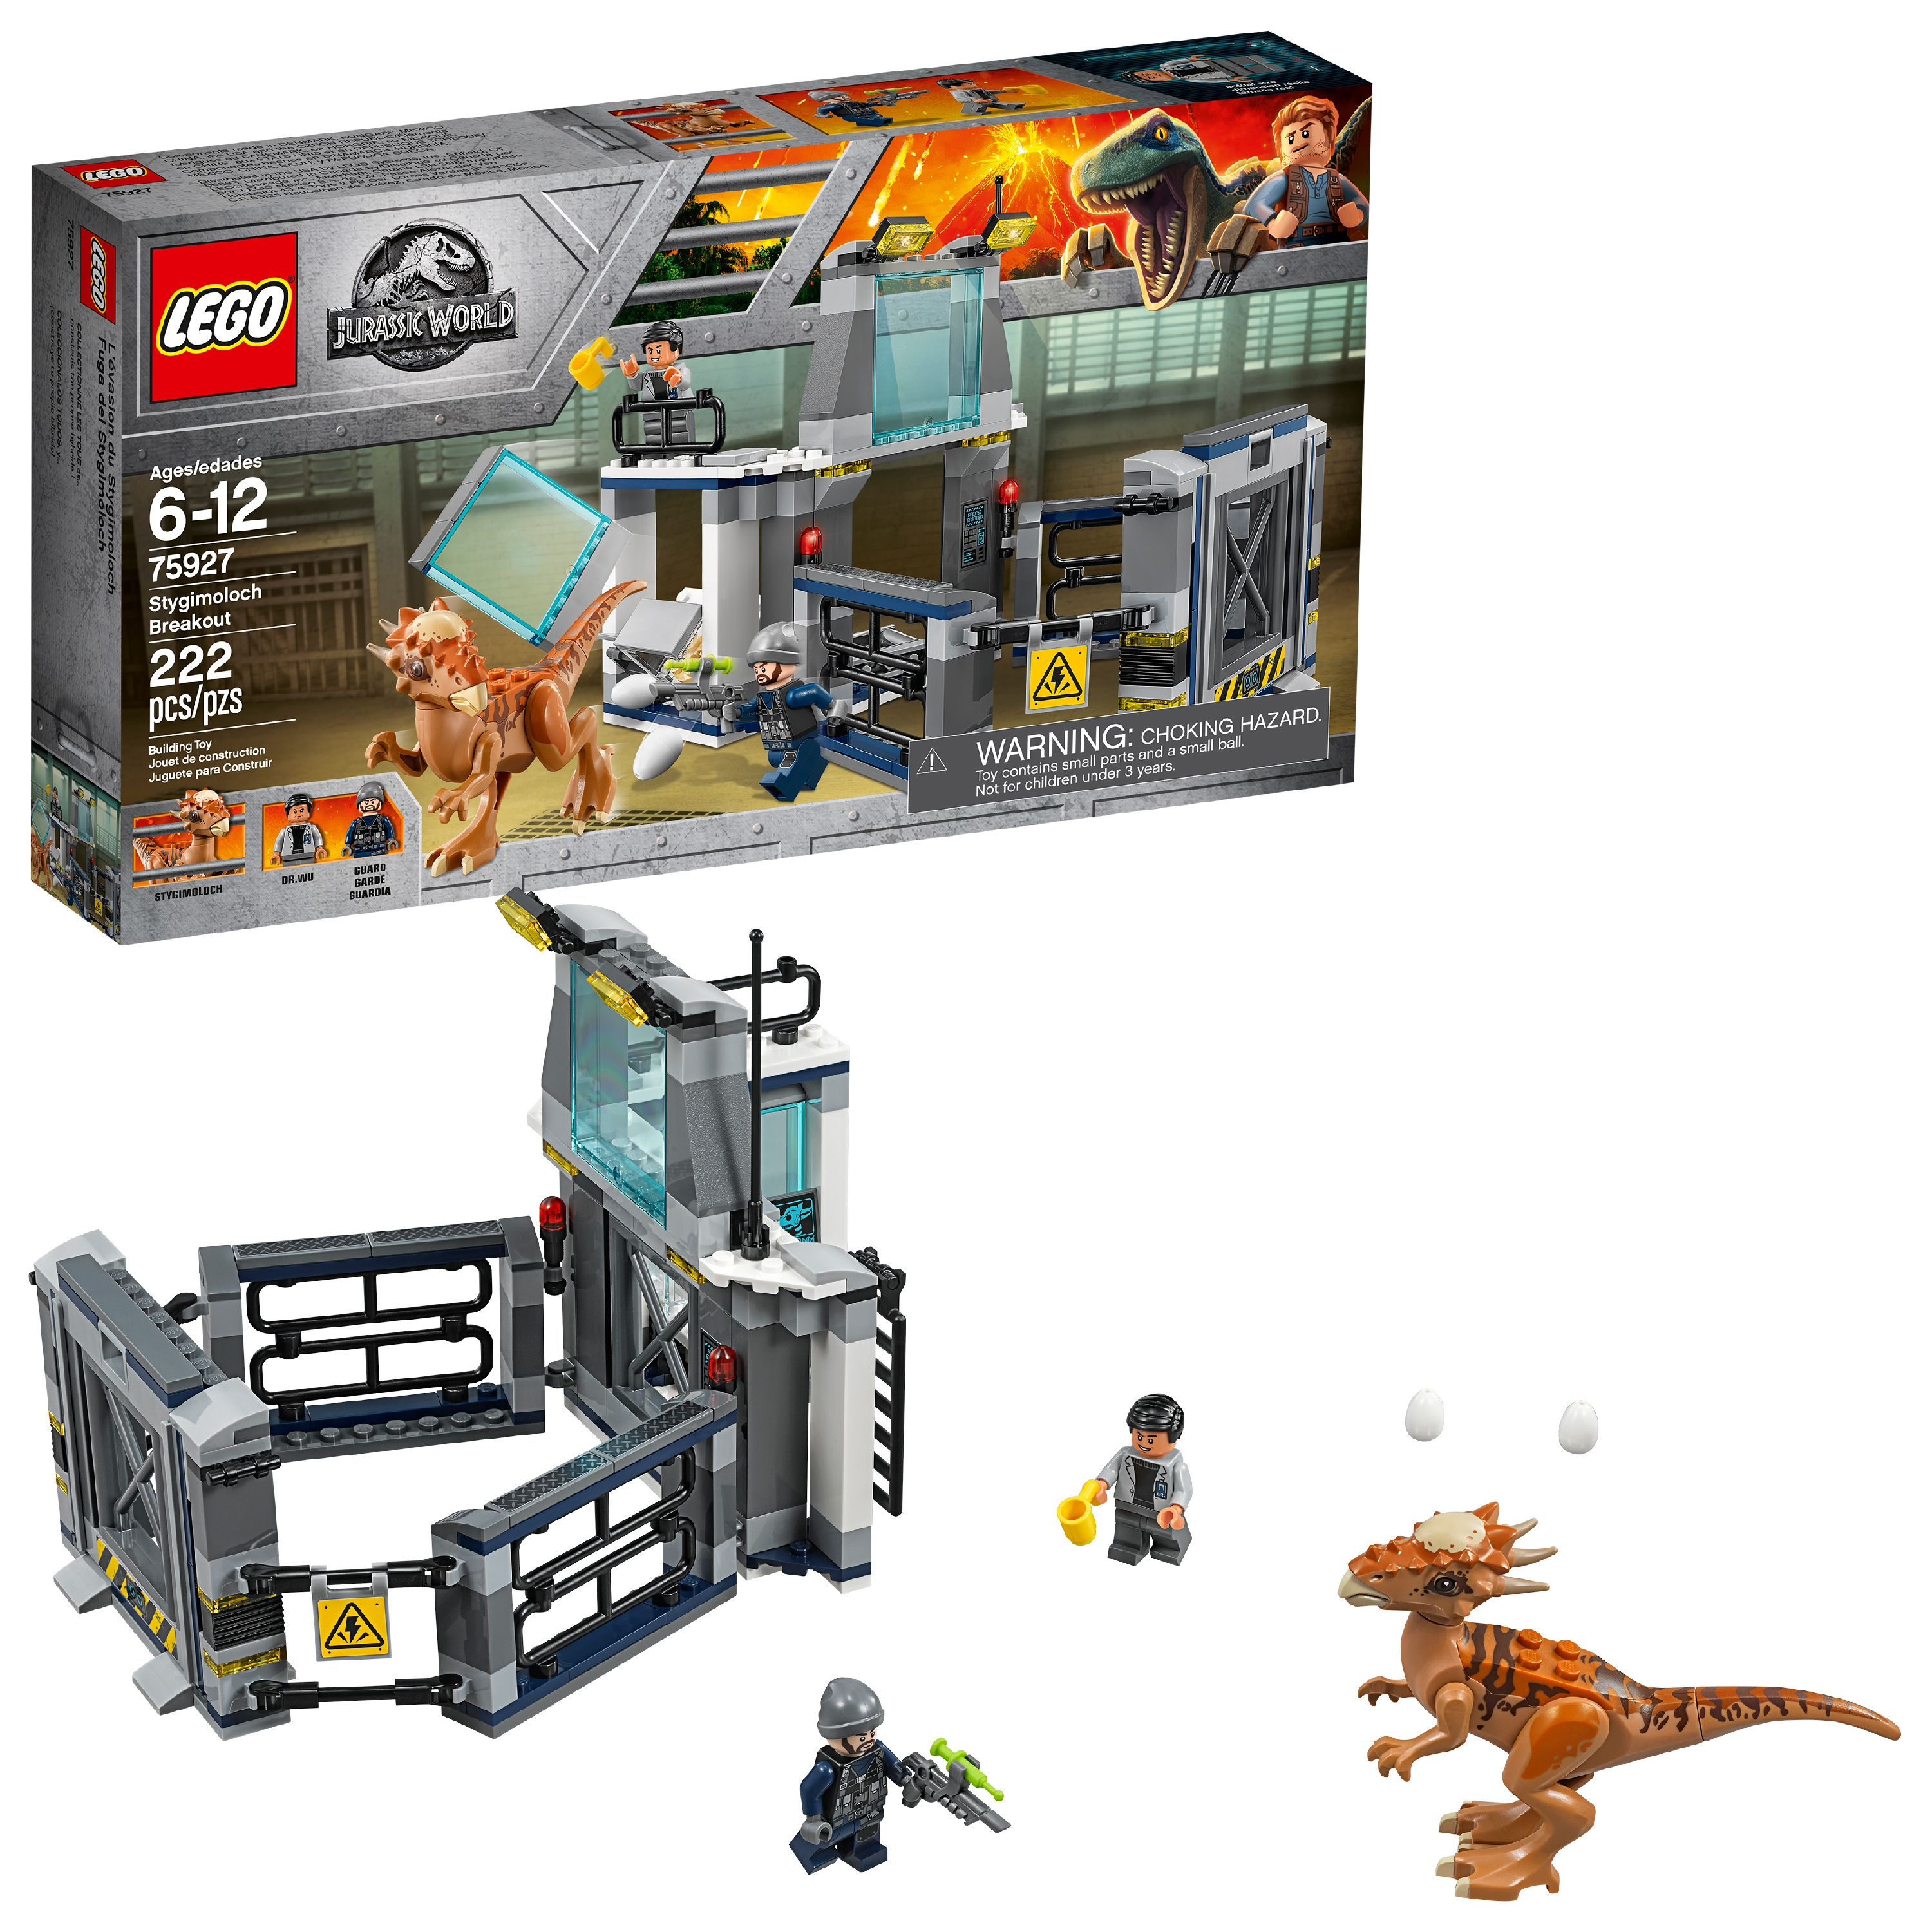 LEGO Jurassic World Stygimoloch Breakout 75927 (222 Pieces)